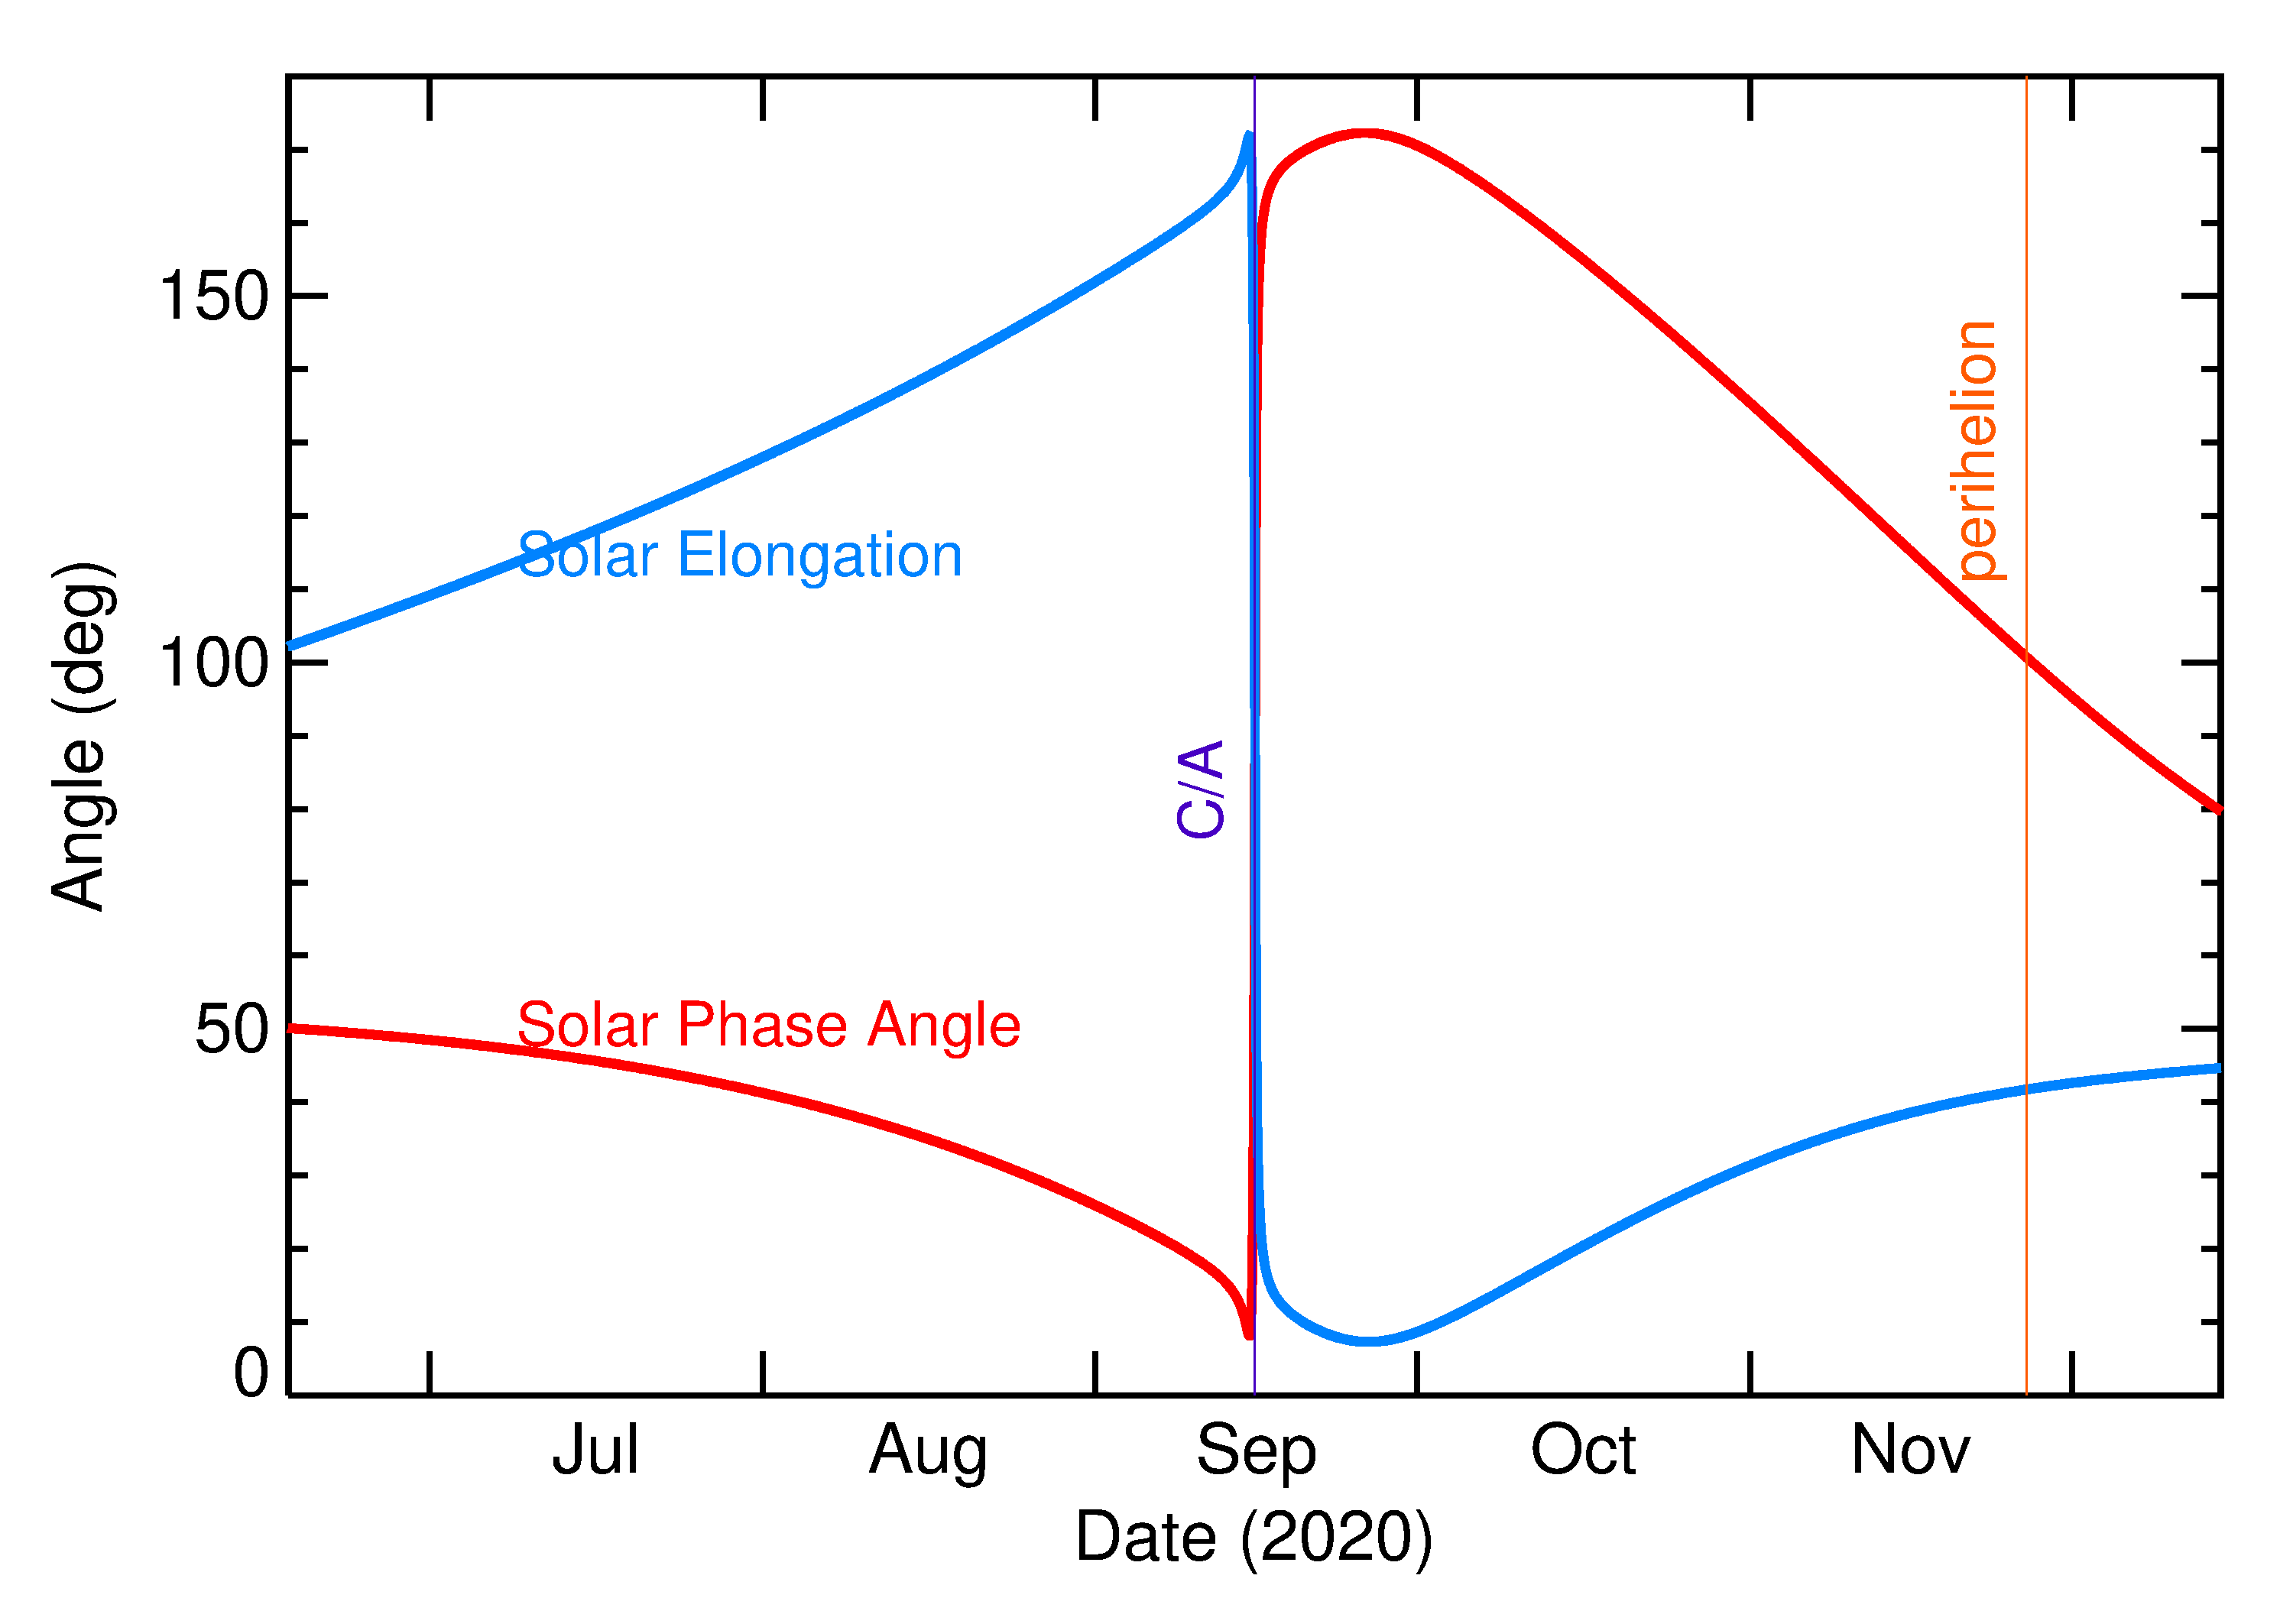 Solar Elongation and Solar Phase Angle of 2020 RD4 in the months around closest approach